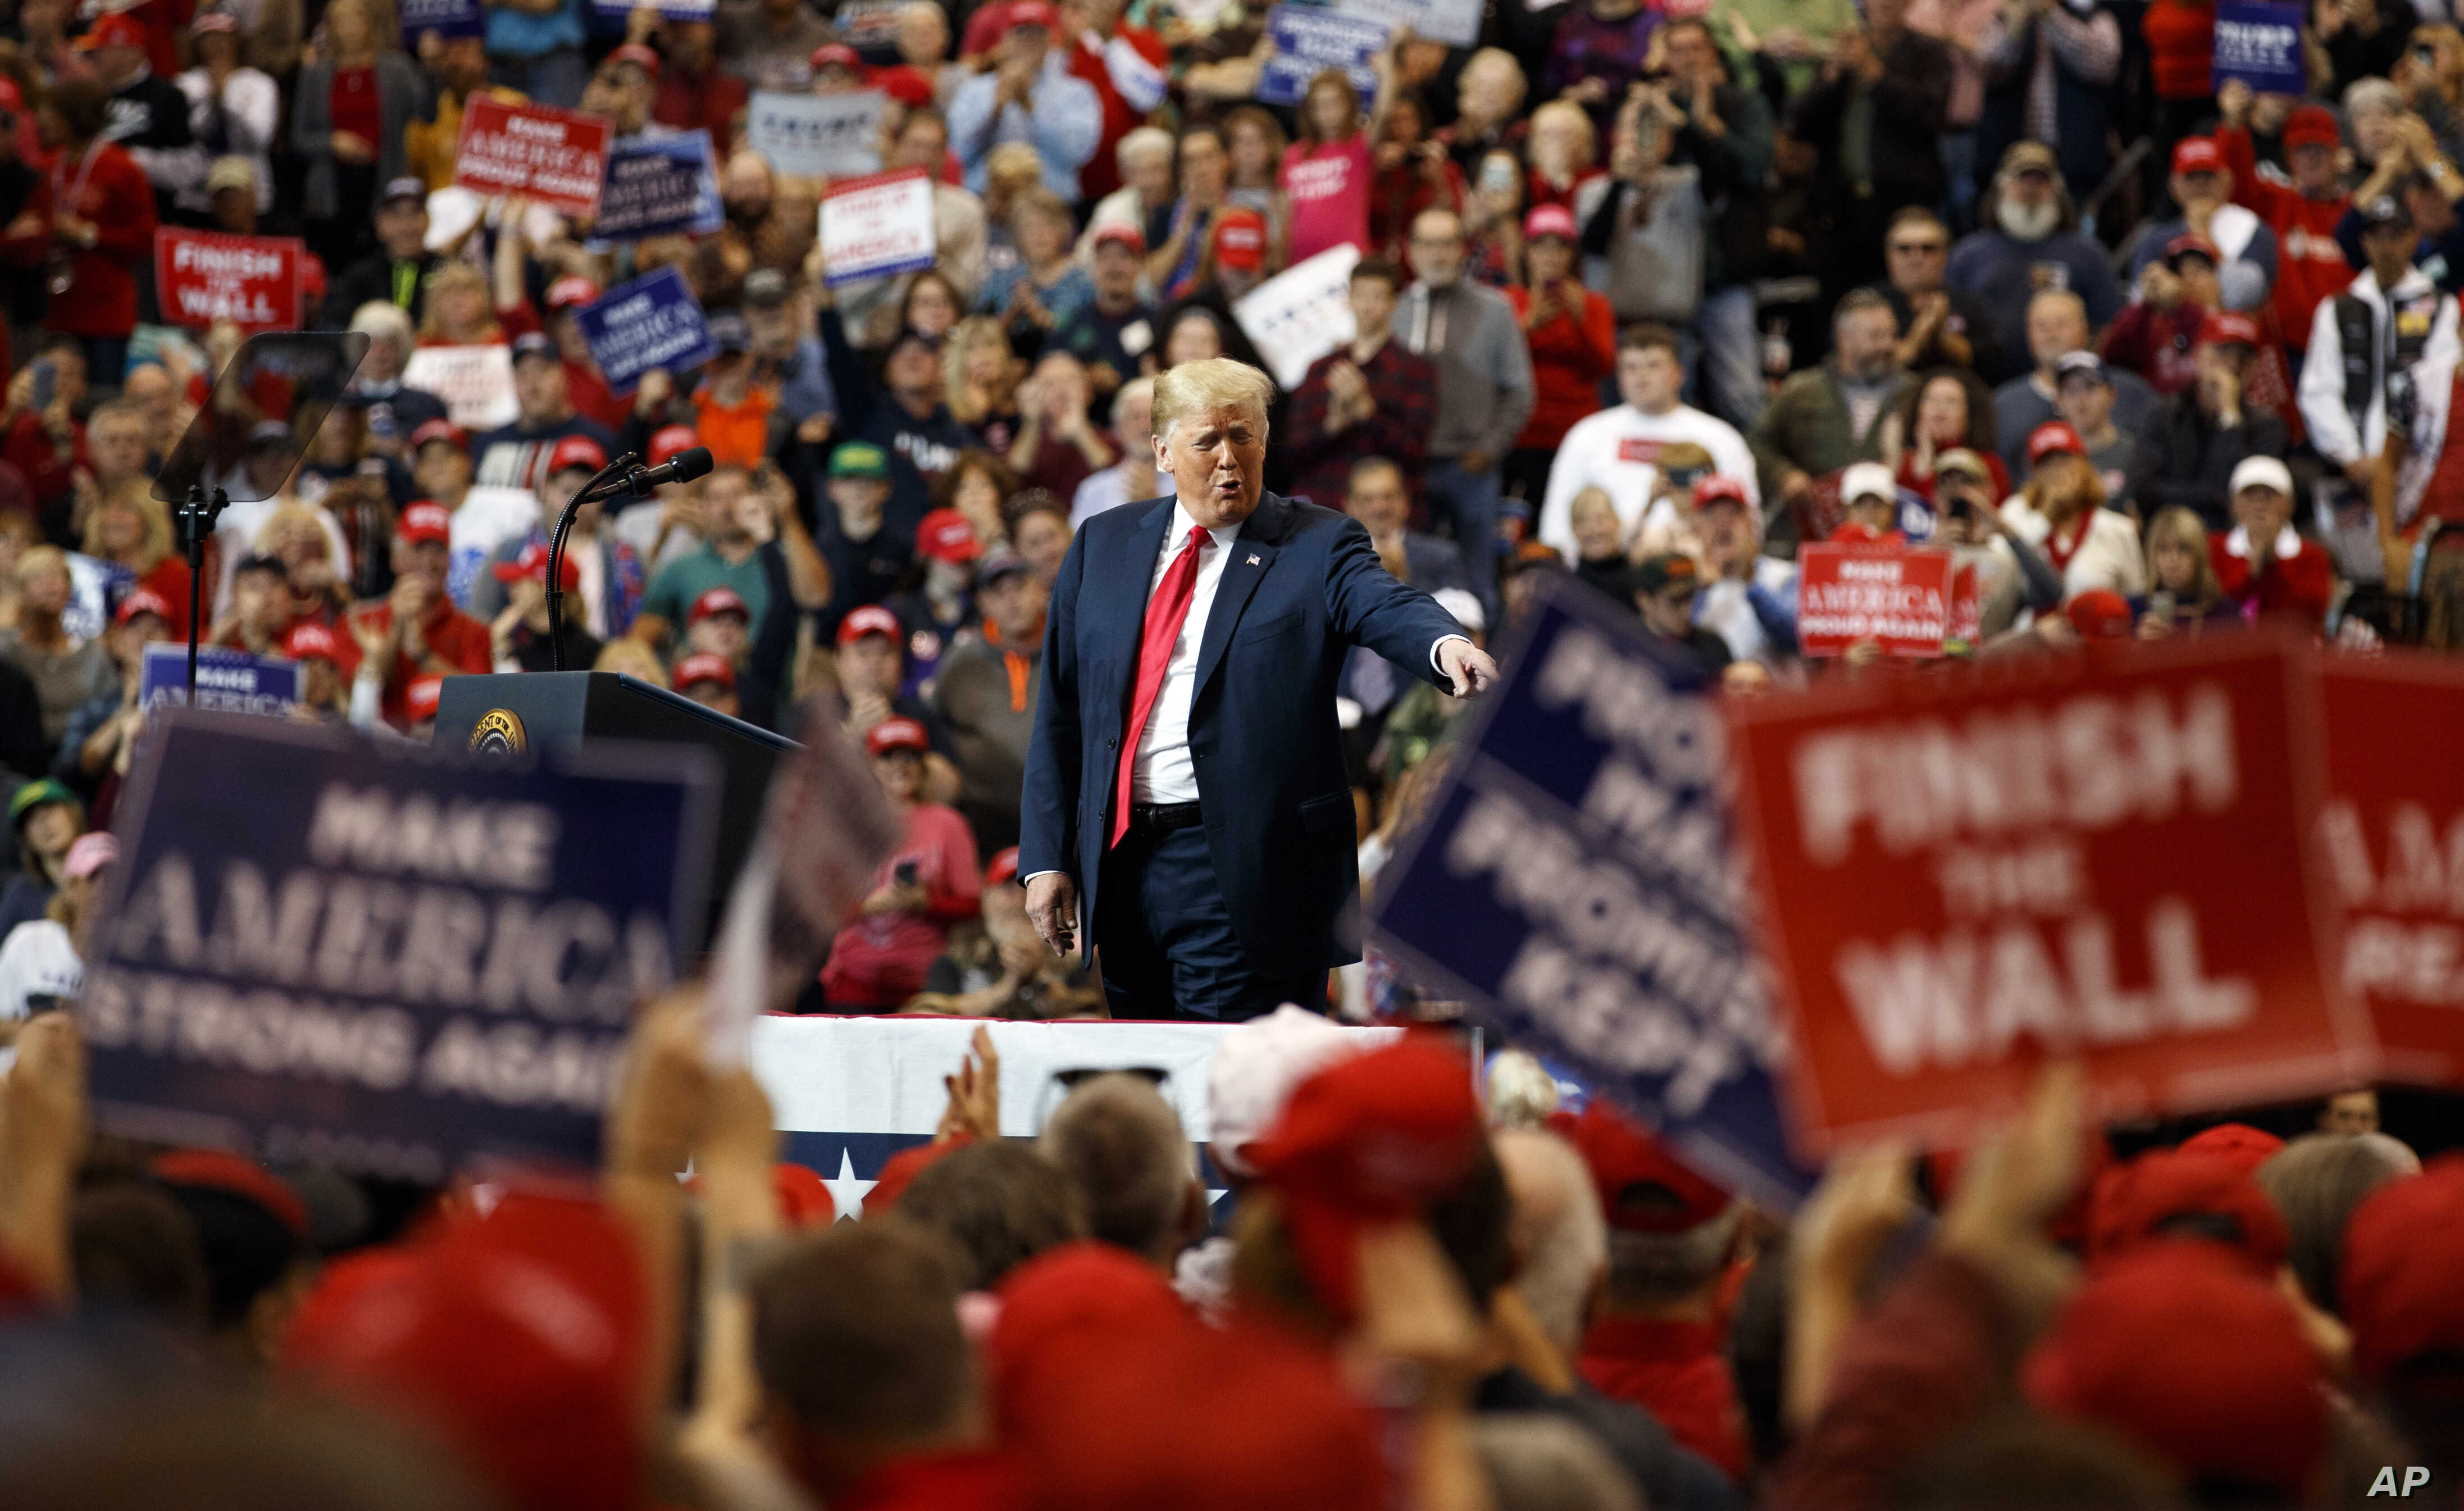 President Donald Trump arrives to speak at a campaign rally at the IX Center, in Cleveland, Nov. 5, 2018.